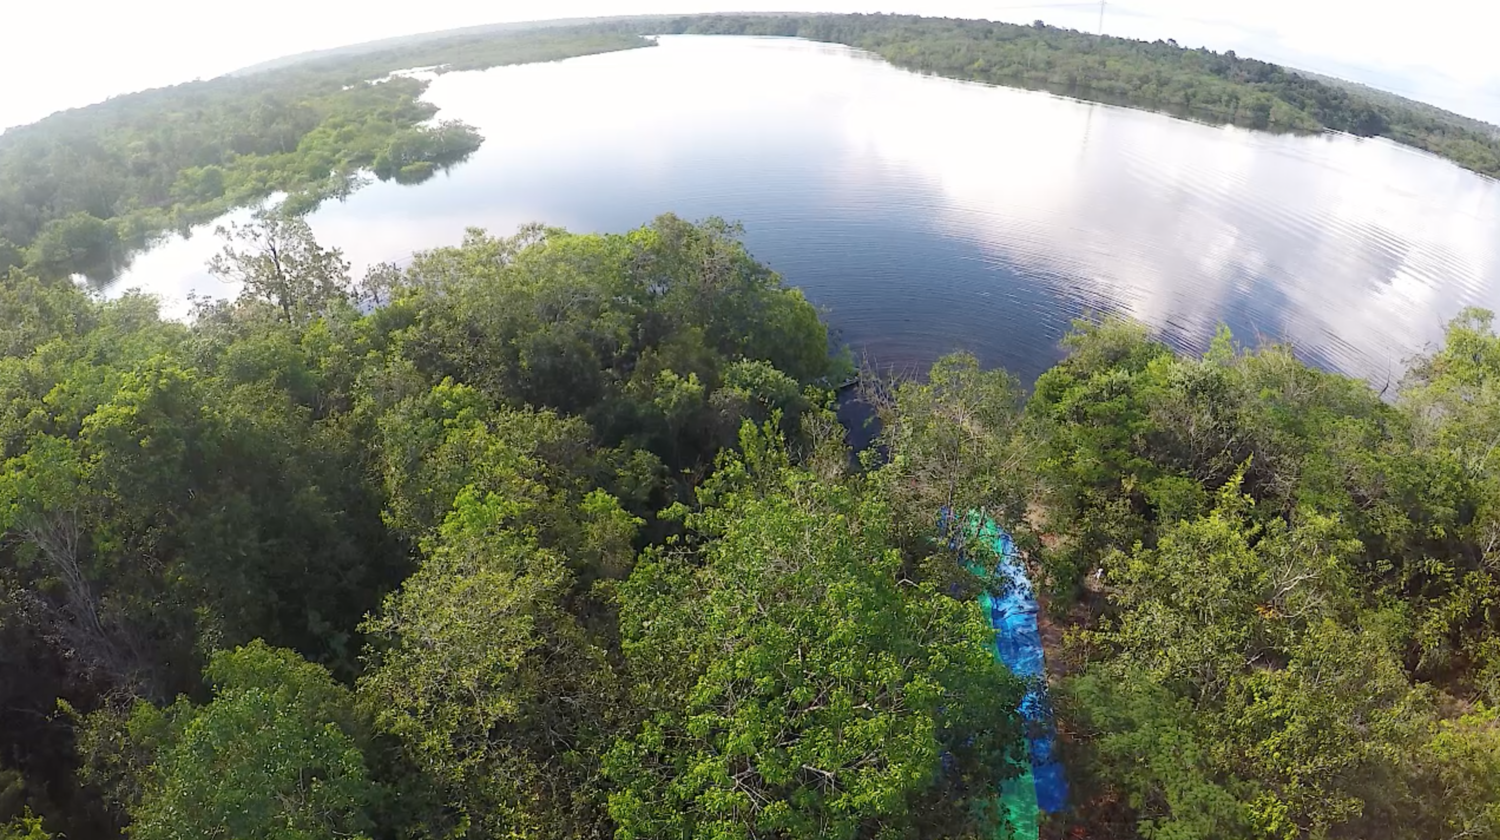 Part of the surrounding tributary, as captured by drone